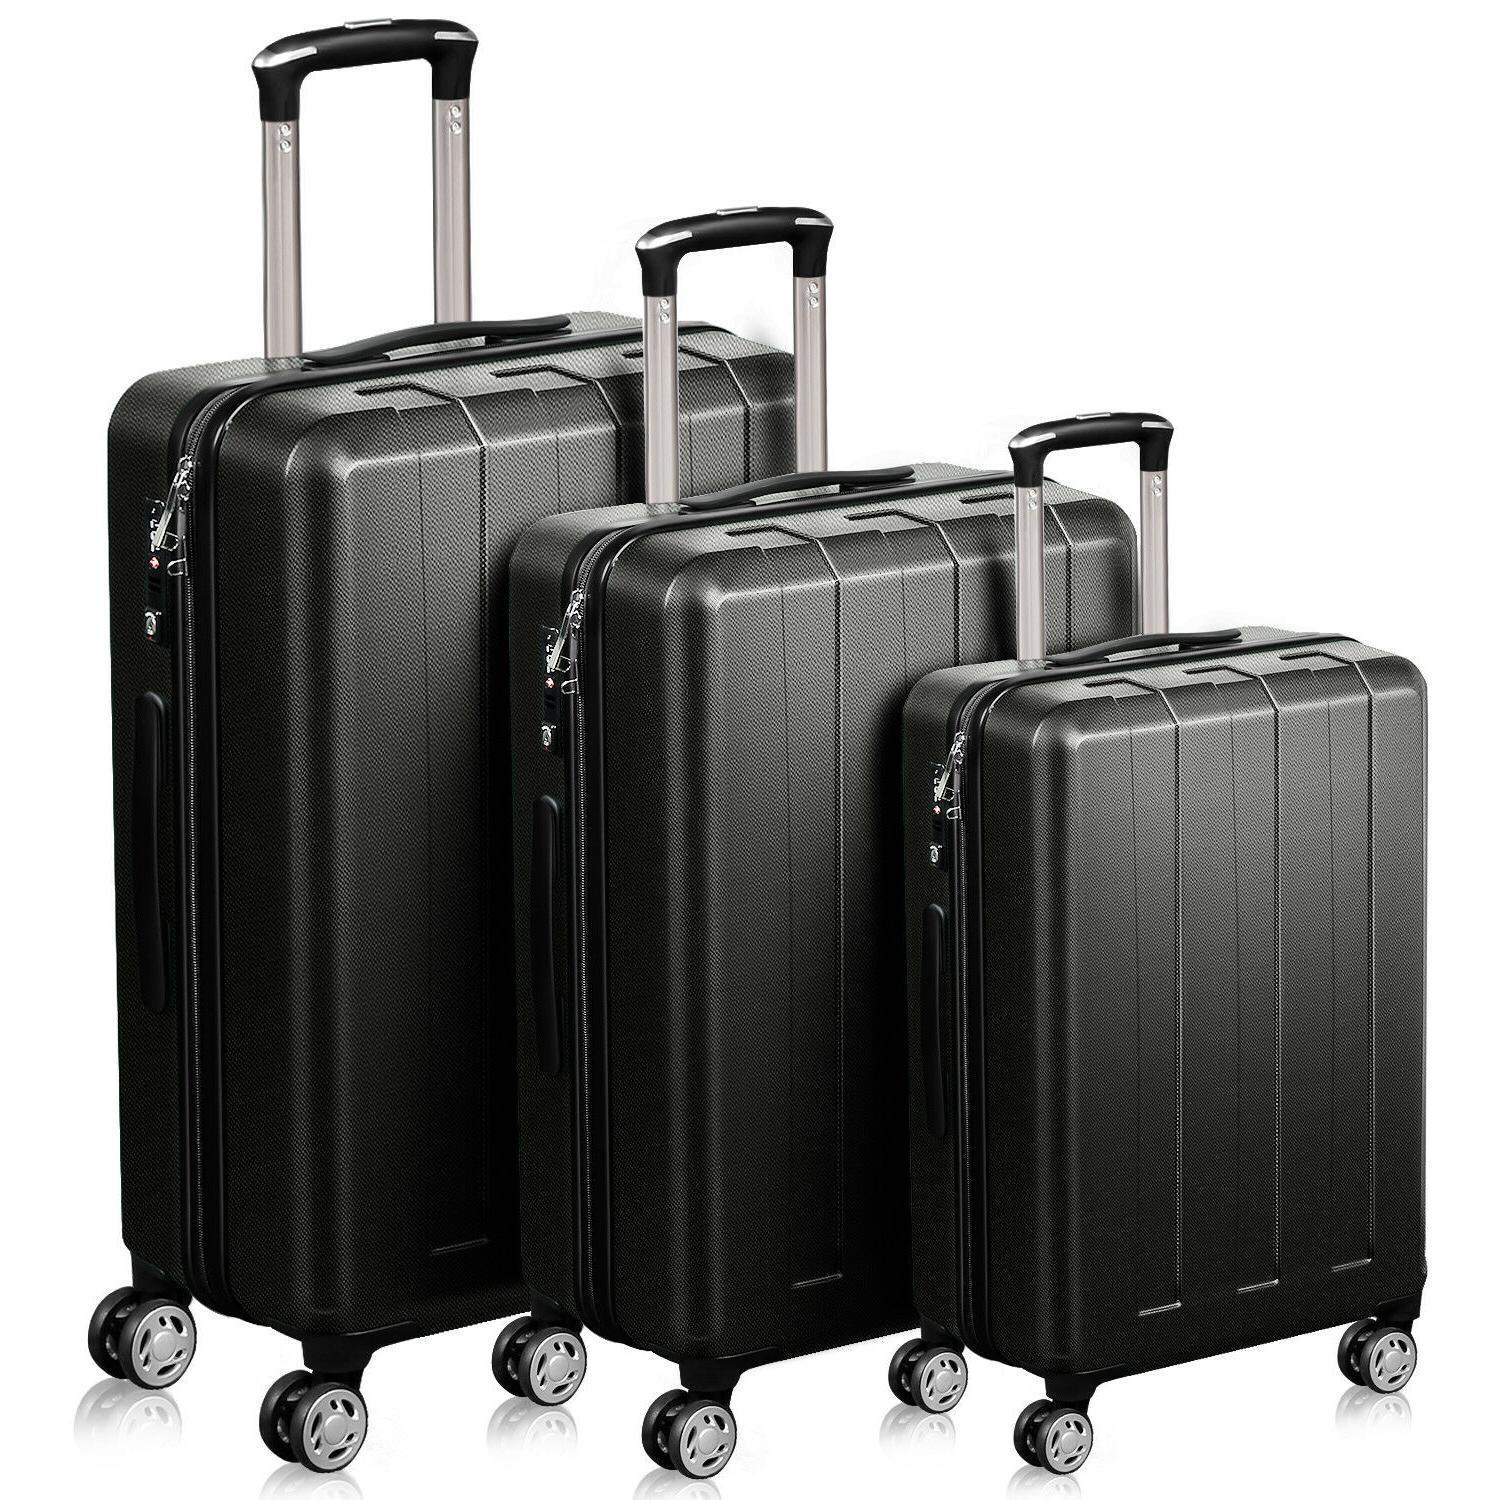 trolley sets of 3 piece pc abs